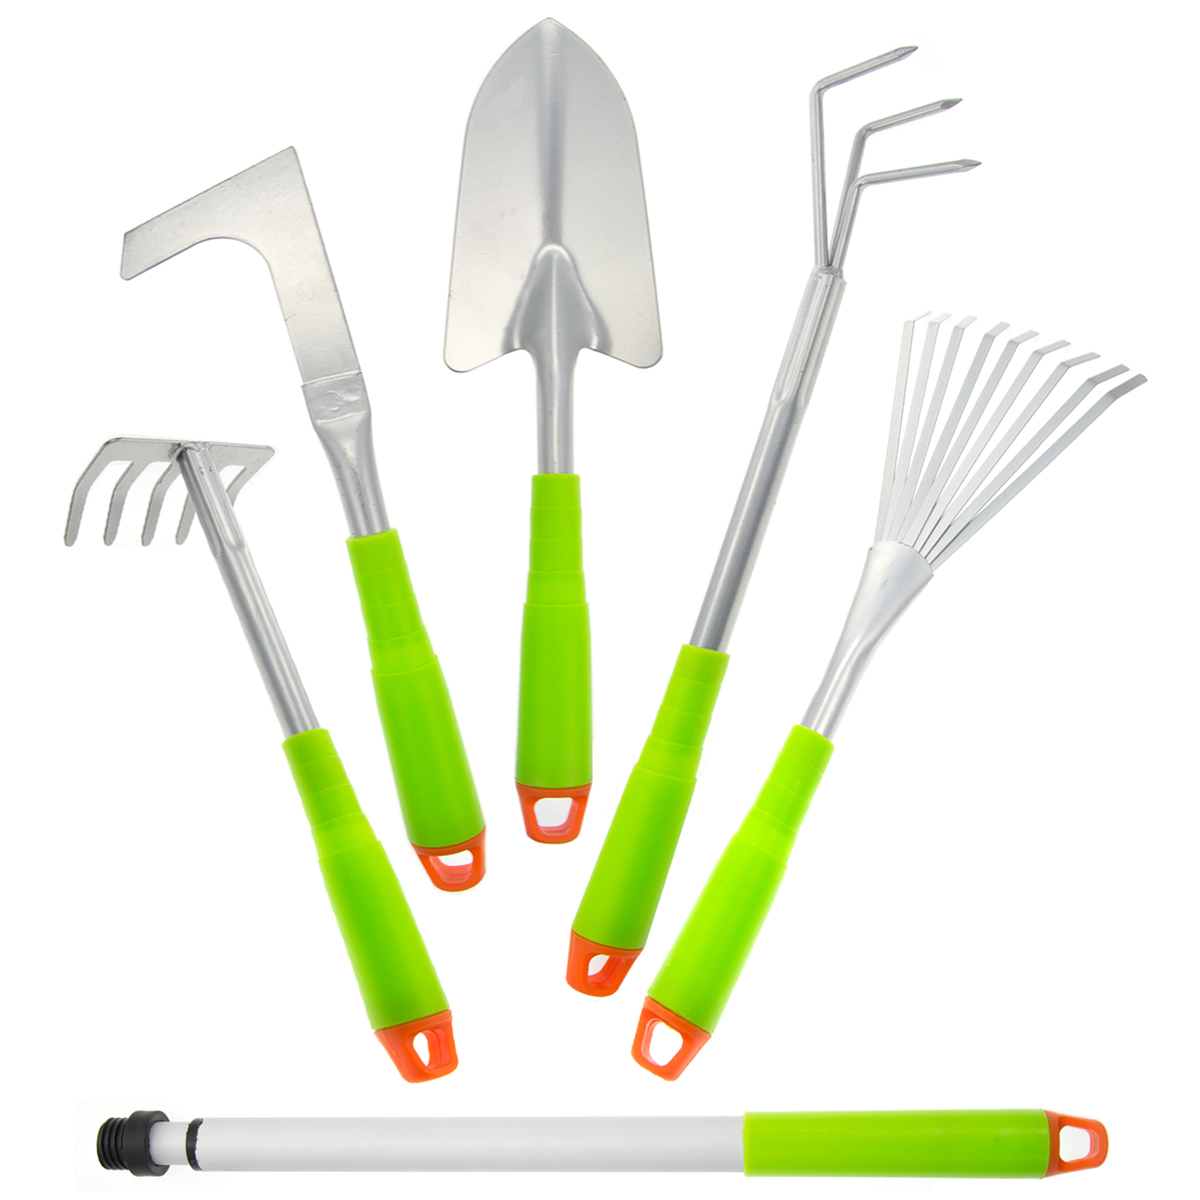 5pc Hand Gardening Tools Set Kit Telescopic Extender Cultivator Weeder Rakes Trowel Home... by